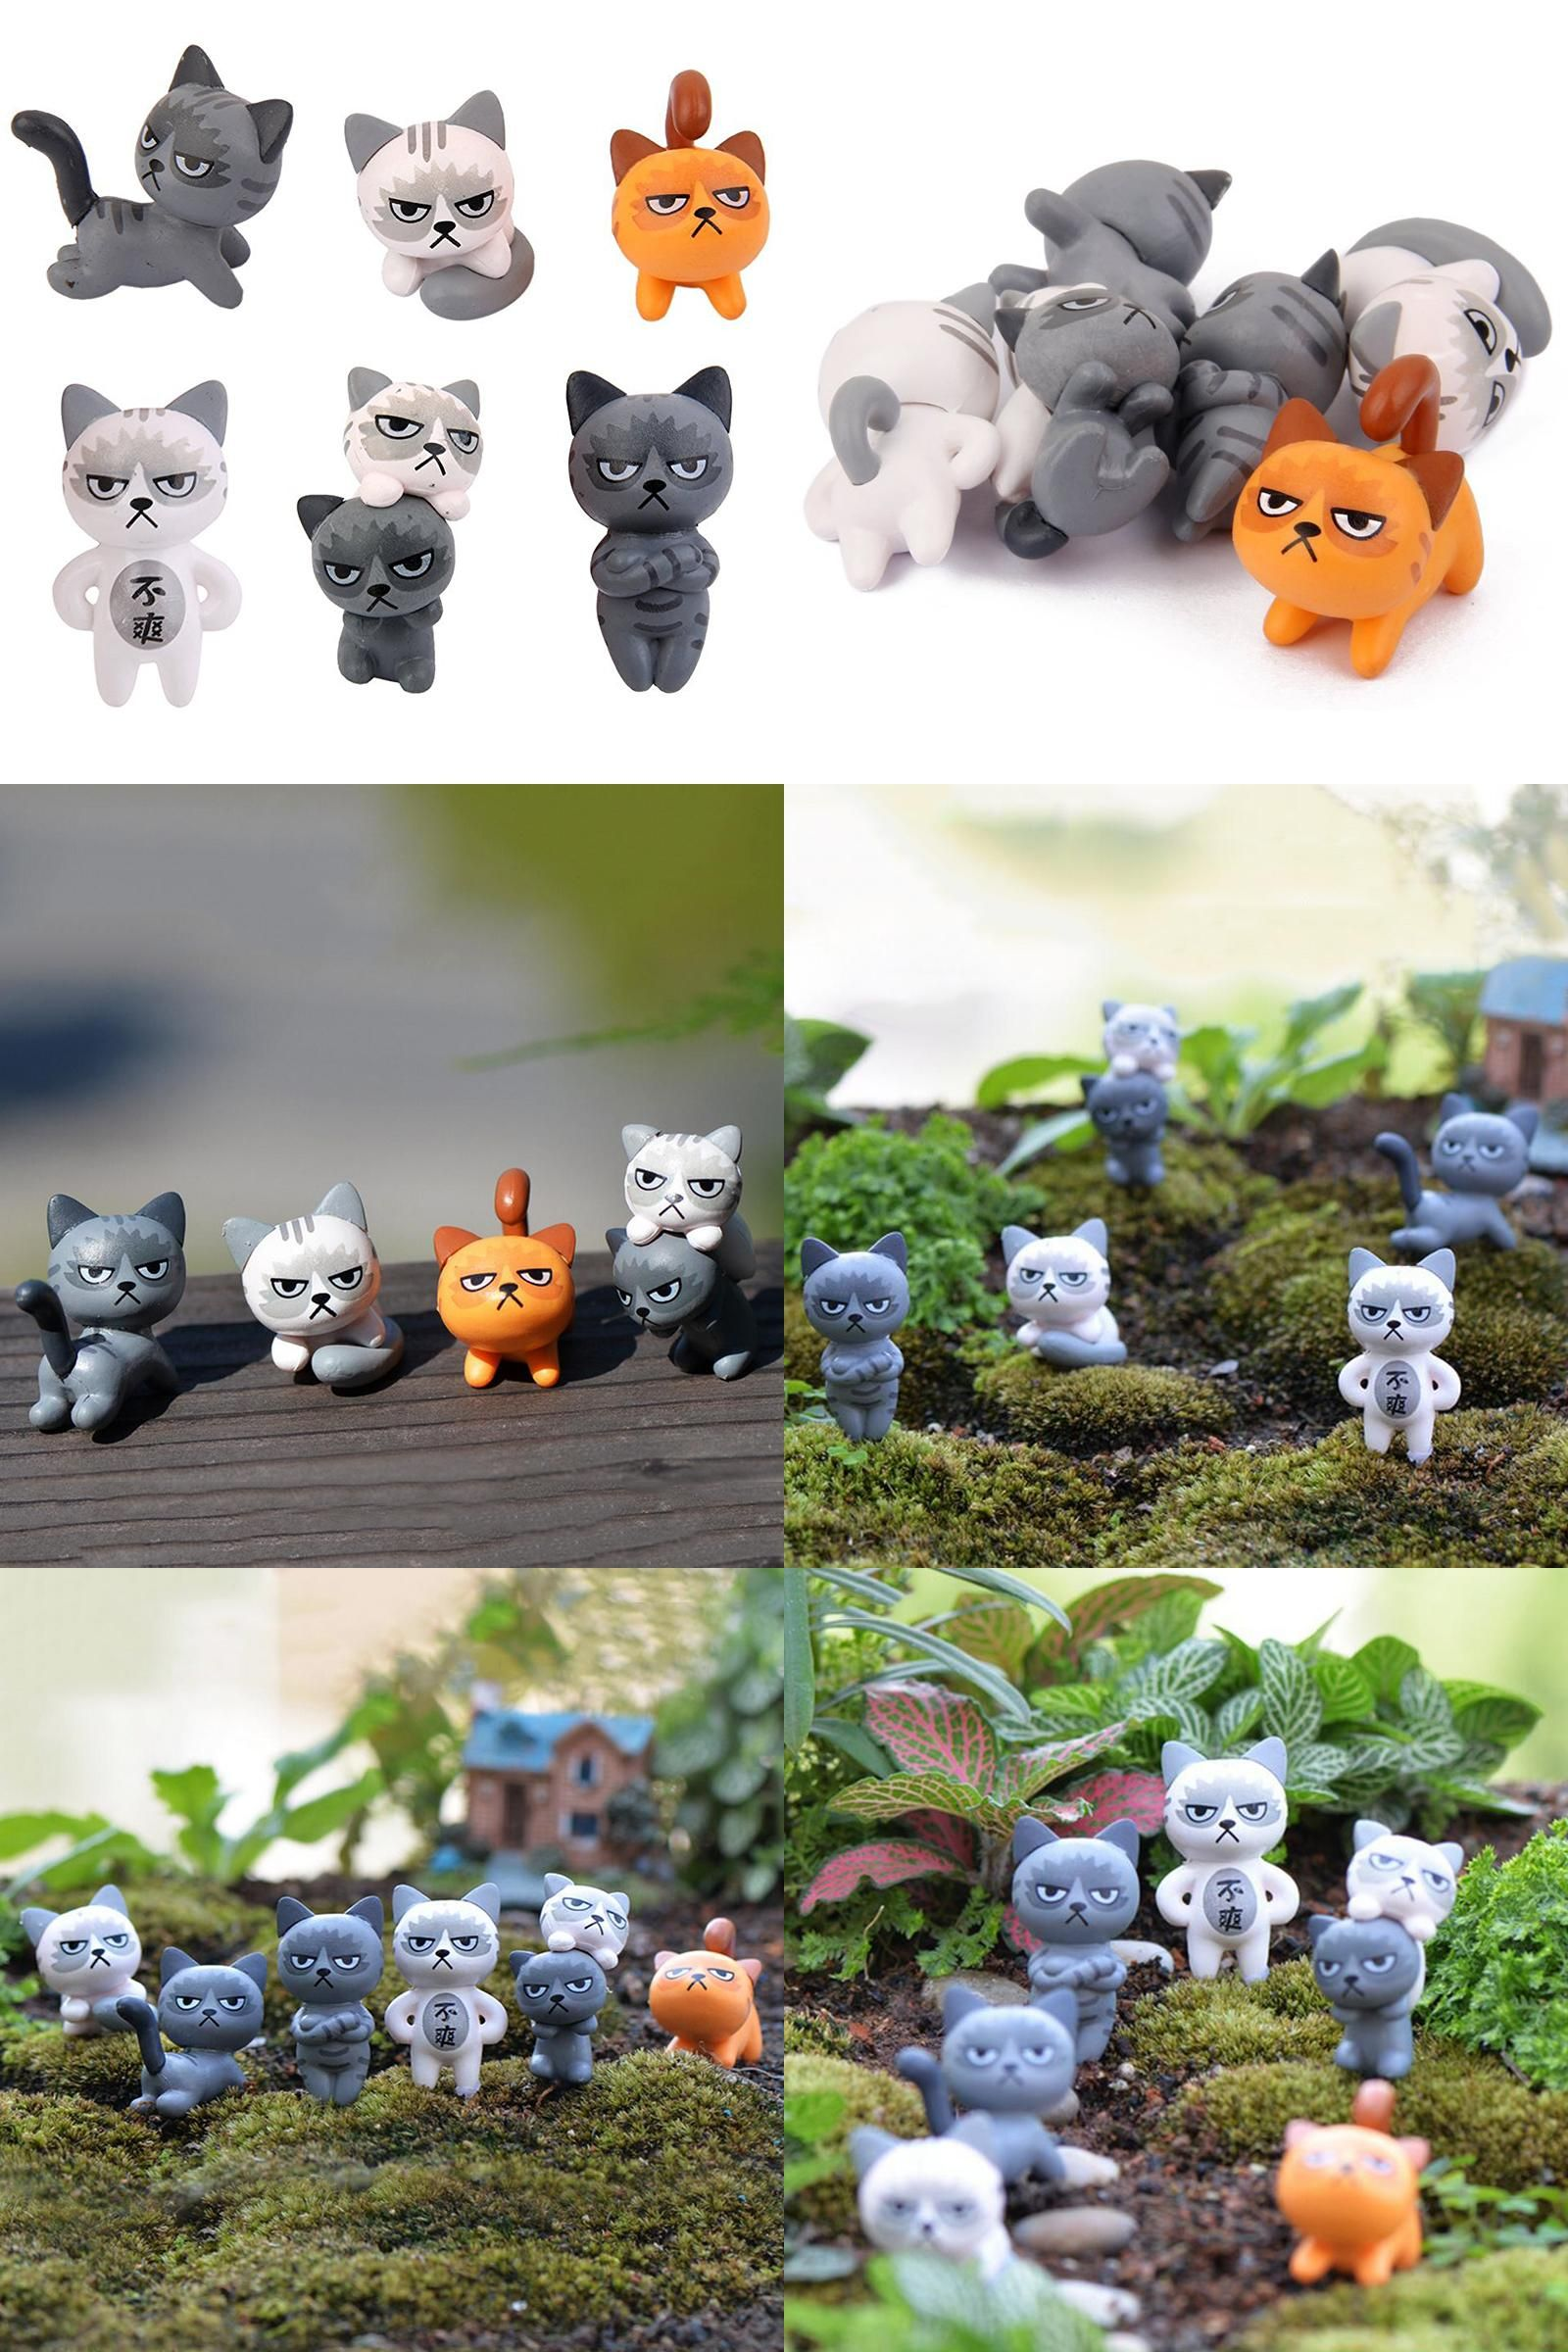 Visit to Buy] Best Selling 6 Pcs/Set Cute Cartoon Lazy Cats For ...